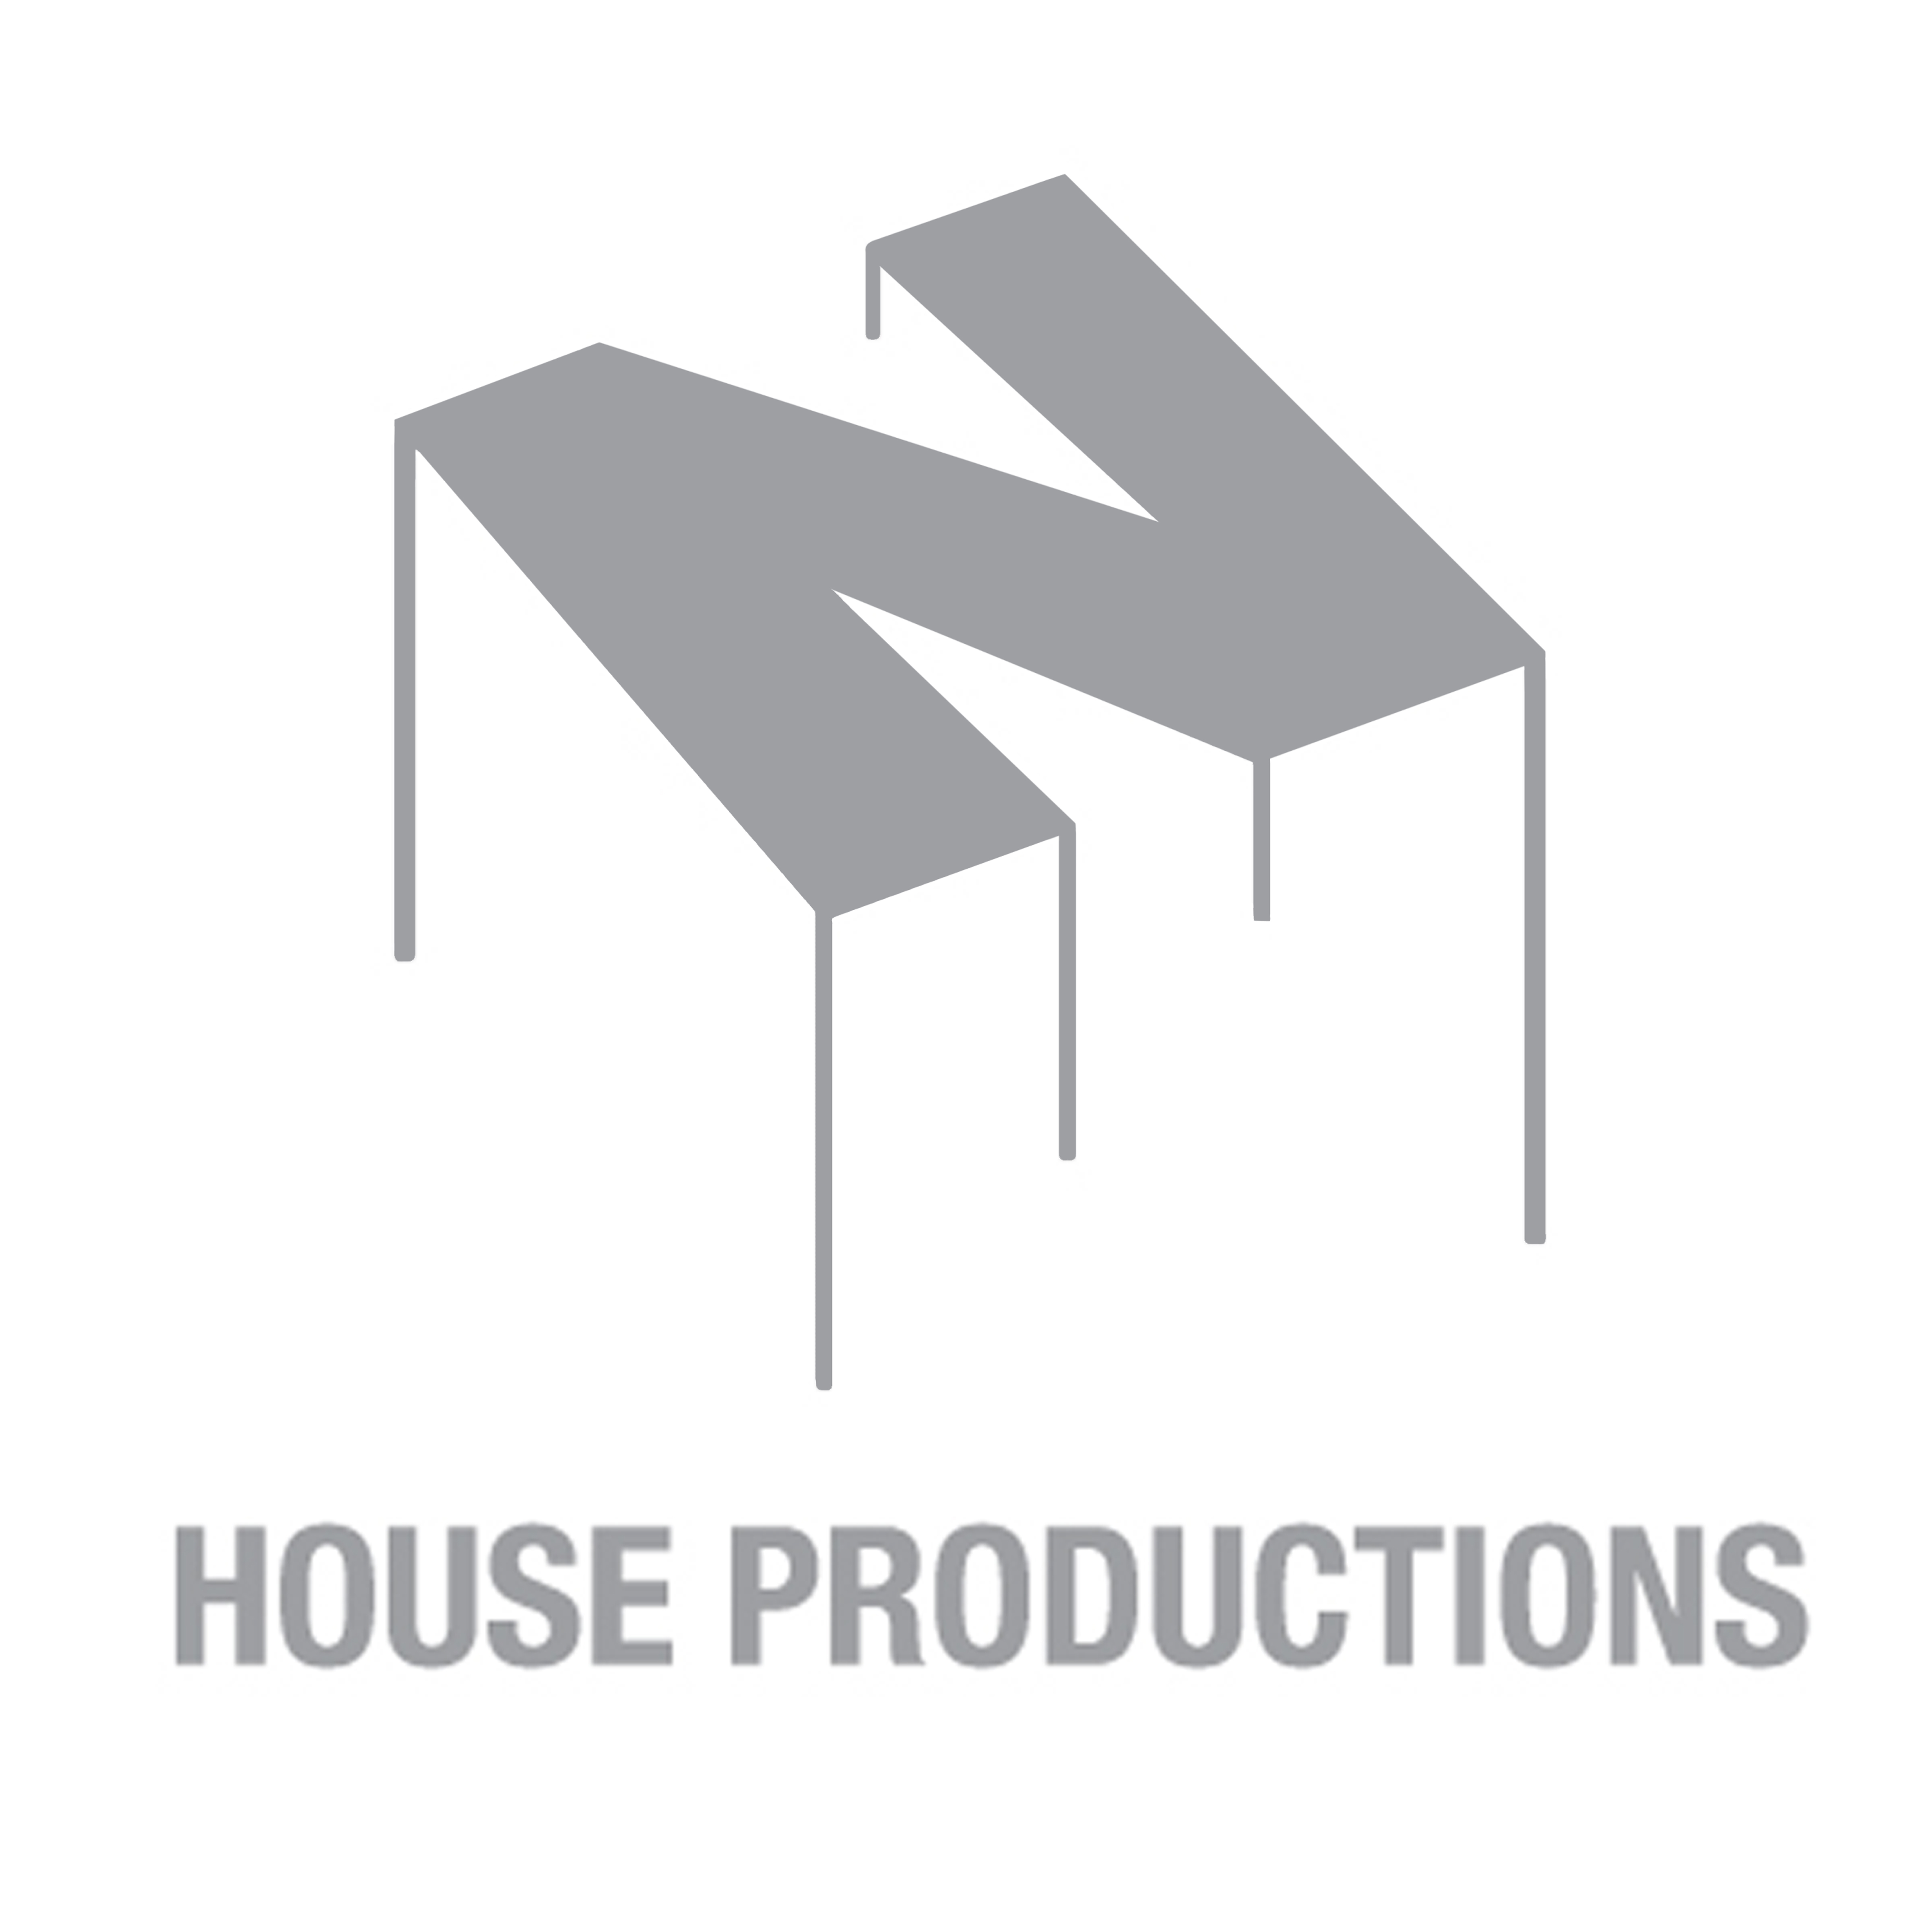 N House Production